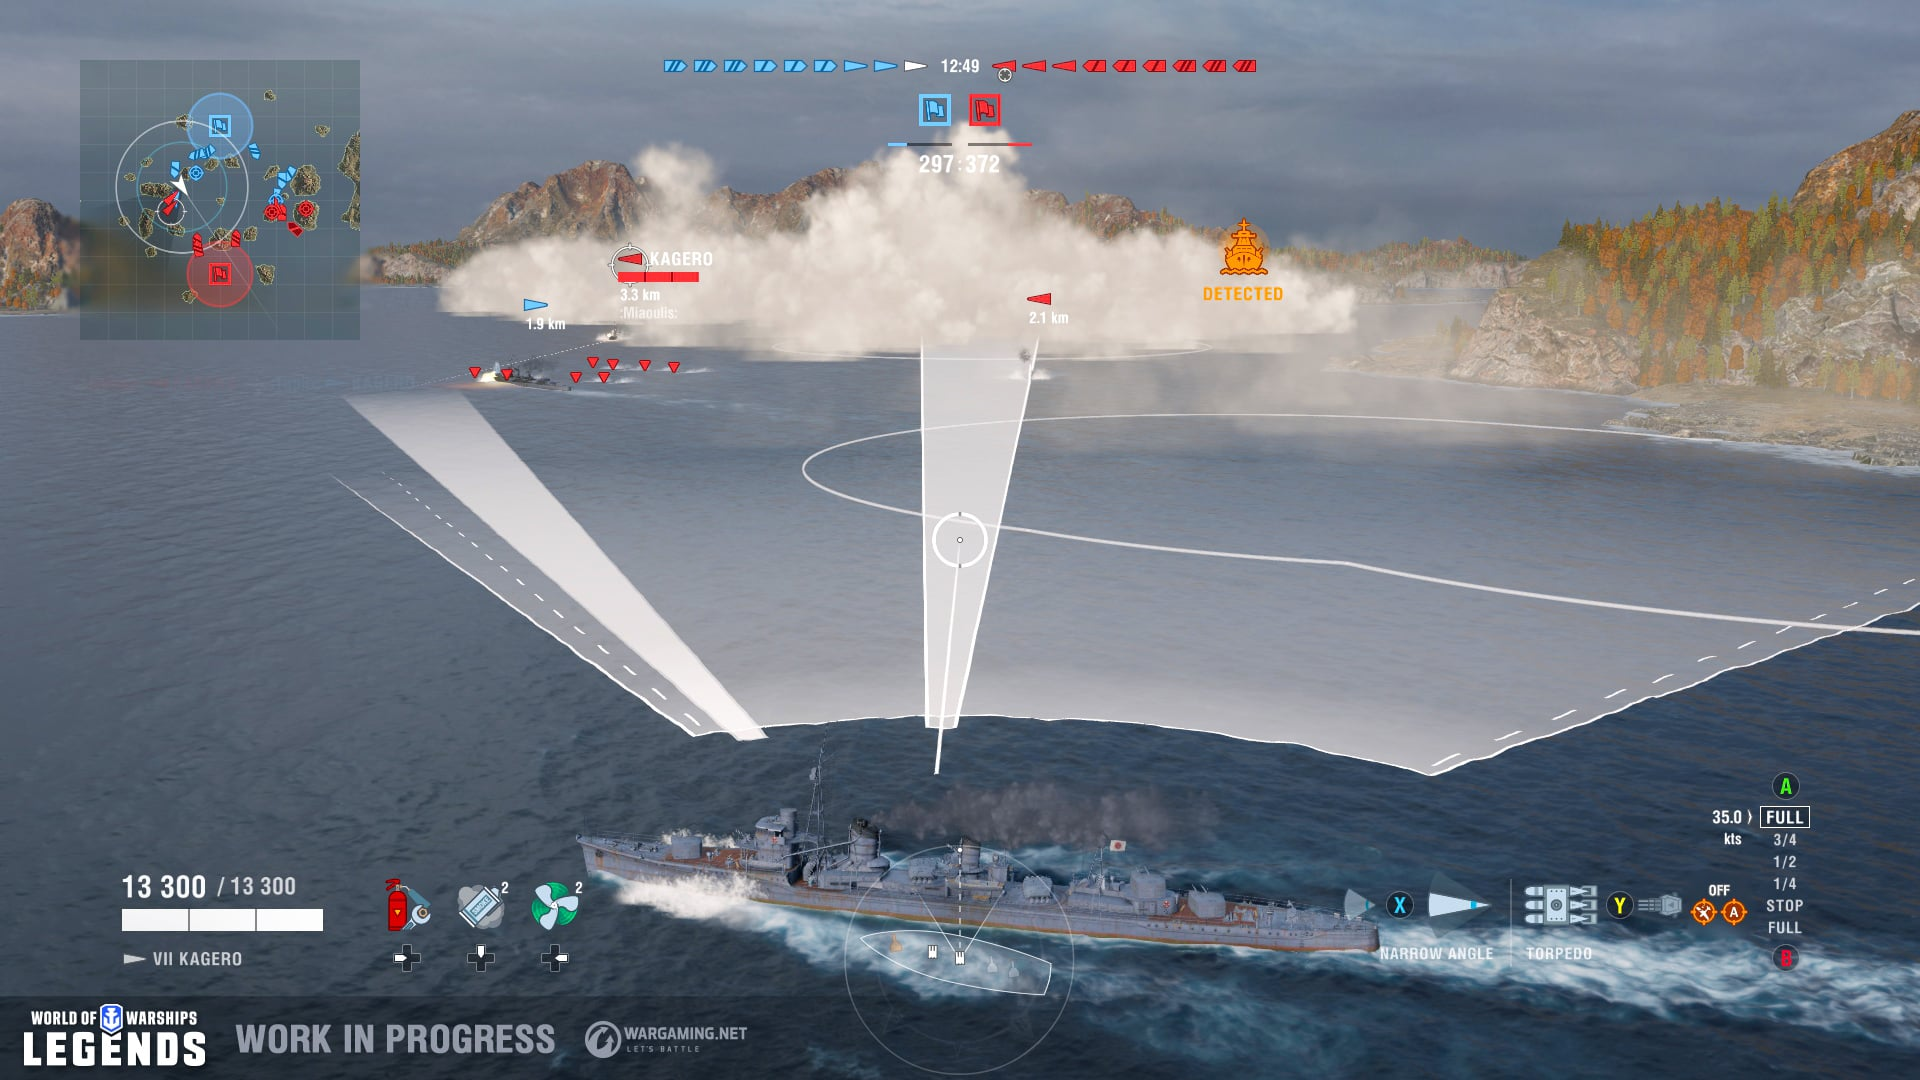 World of Warships: Legends Comes to Console - DVS Gaming